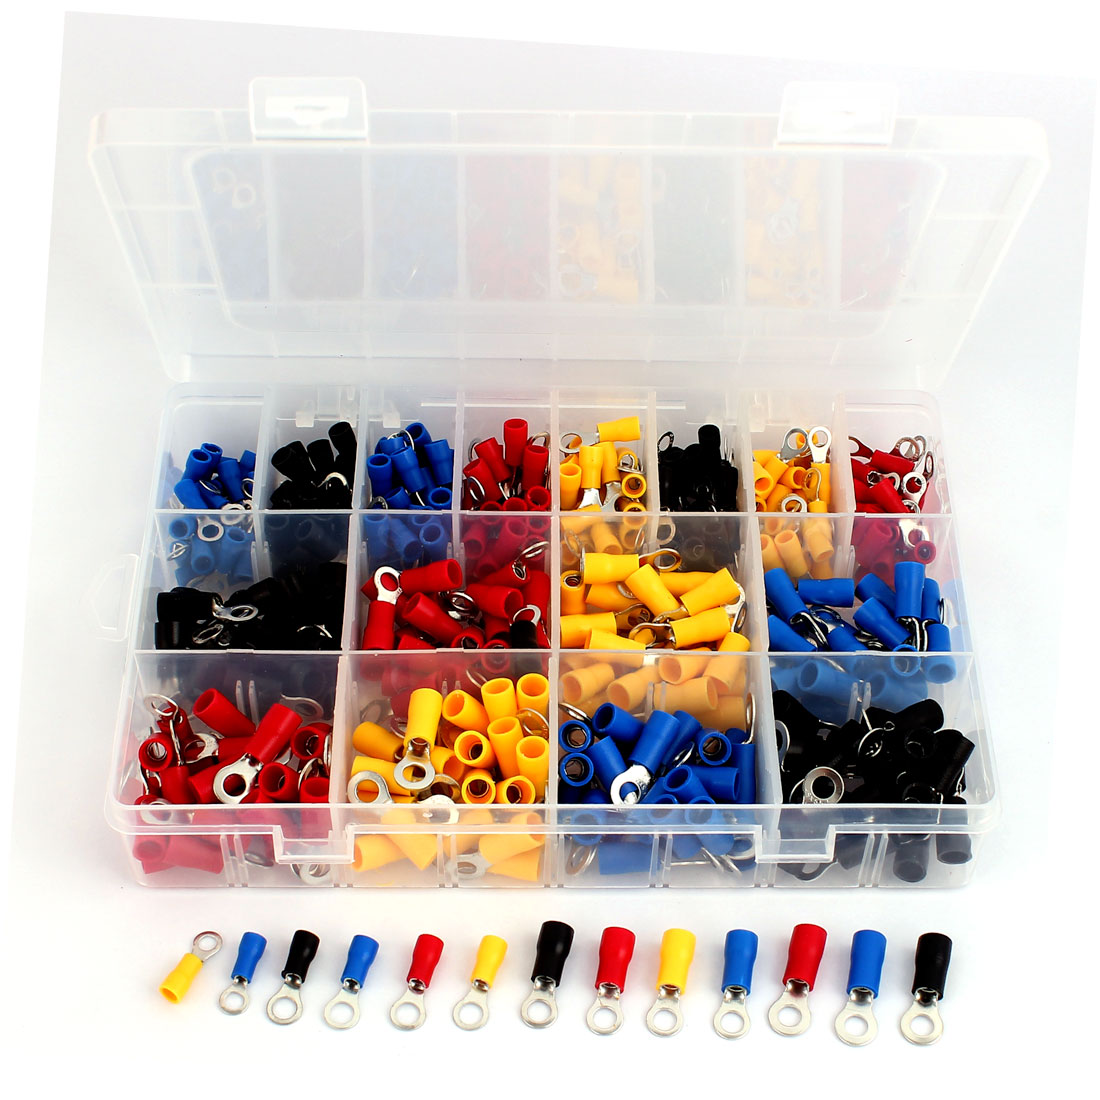 400 Pcs Insulated Wire Connector Crimp Terminal Assortment Kit